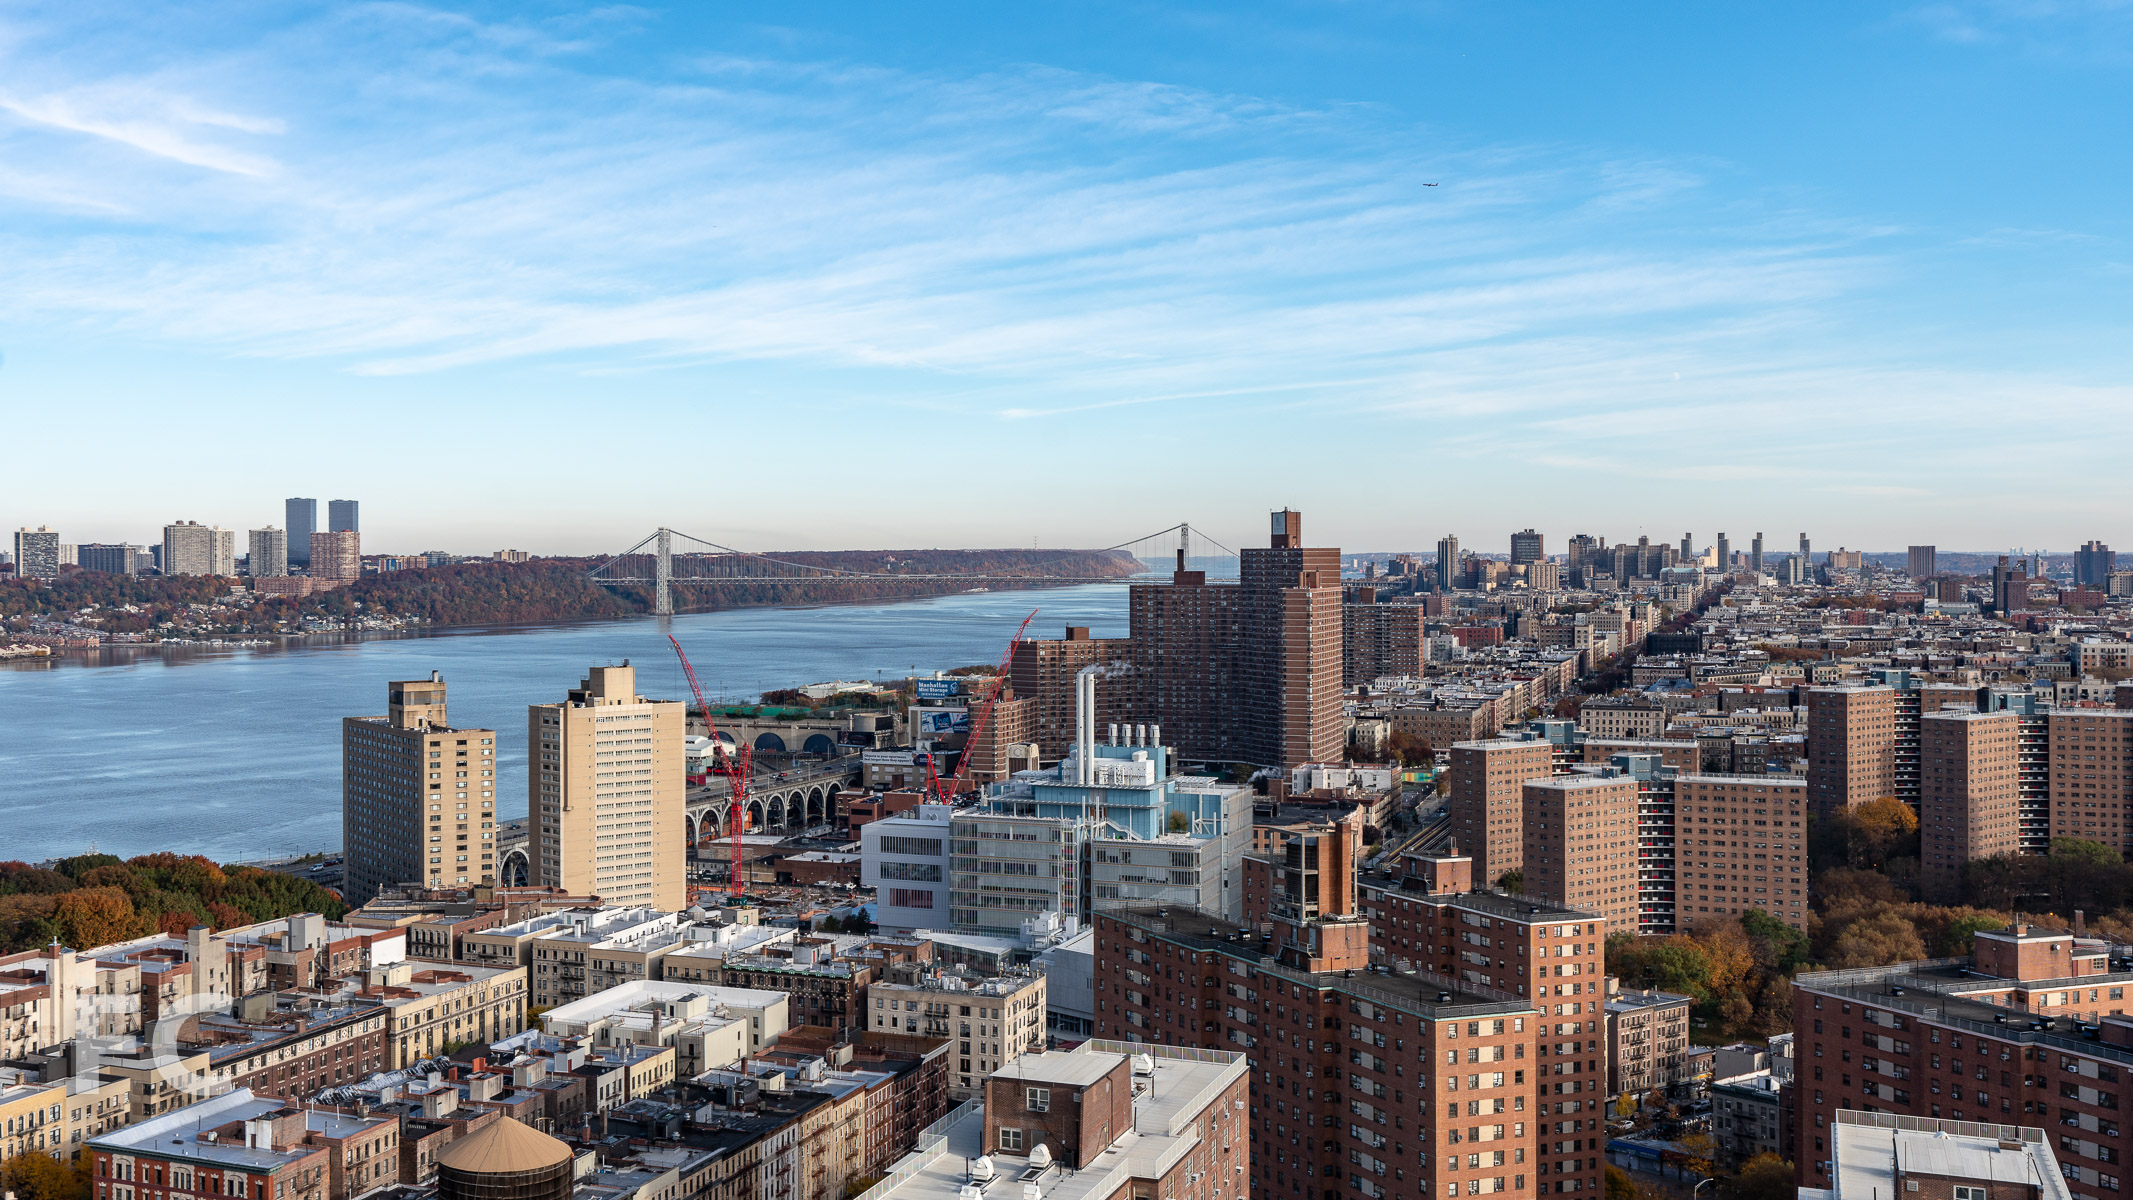 View northwest towards Columbia University's Manhattanville expansion campus and Harlem from an upper floor.